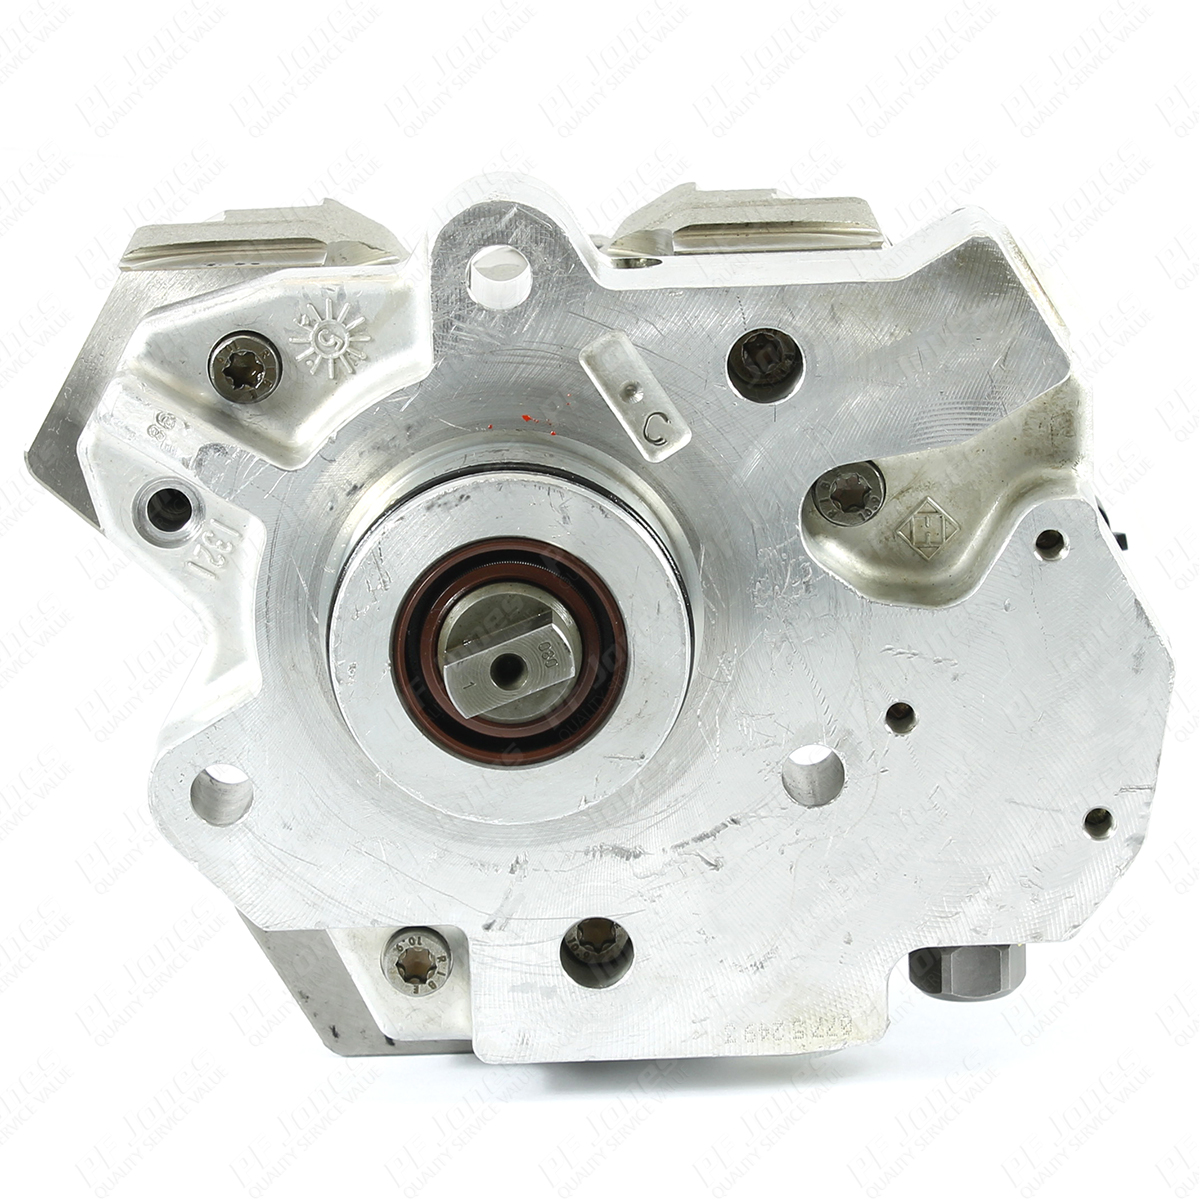 Iveco Daily 3.0 2004-2006 Reconditioned Bosch Common Rail Pump 0445010098